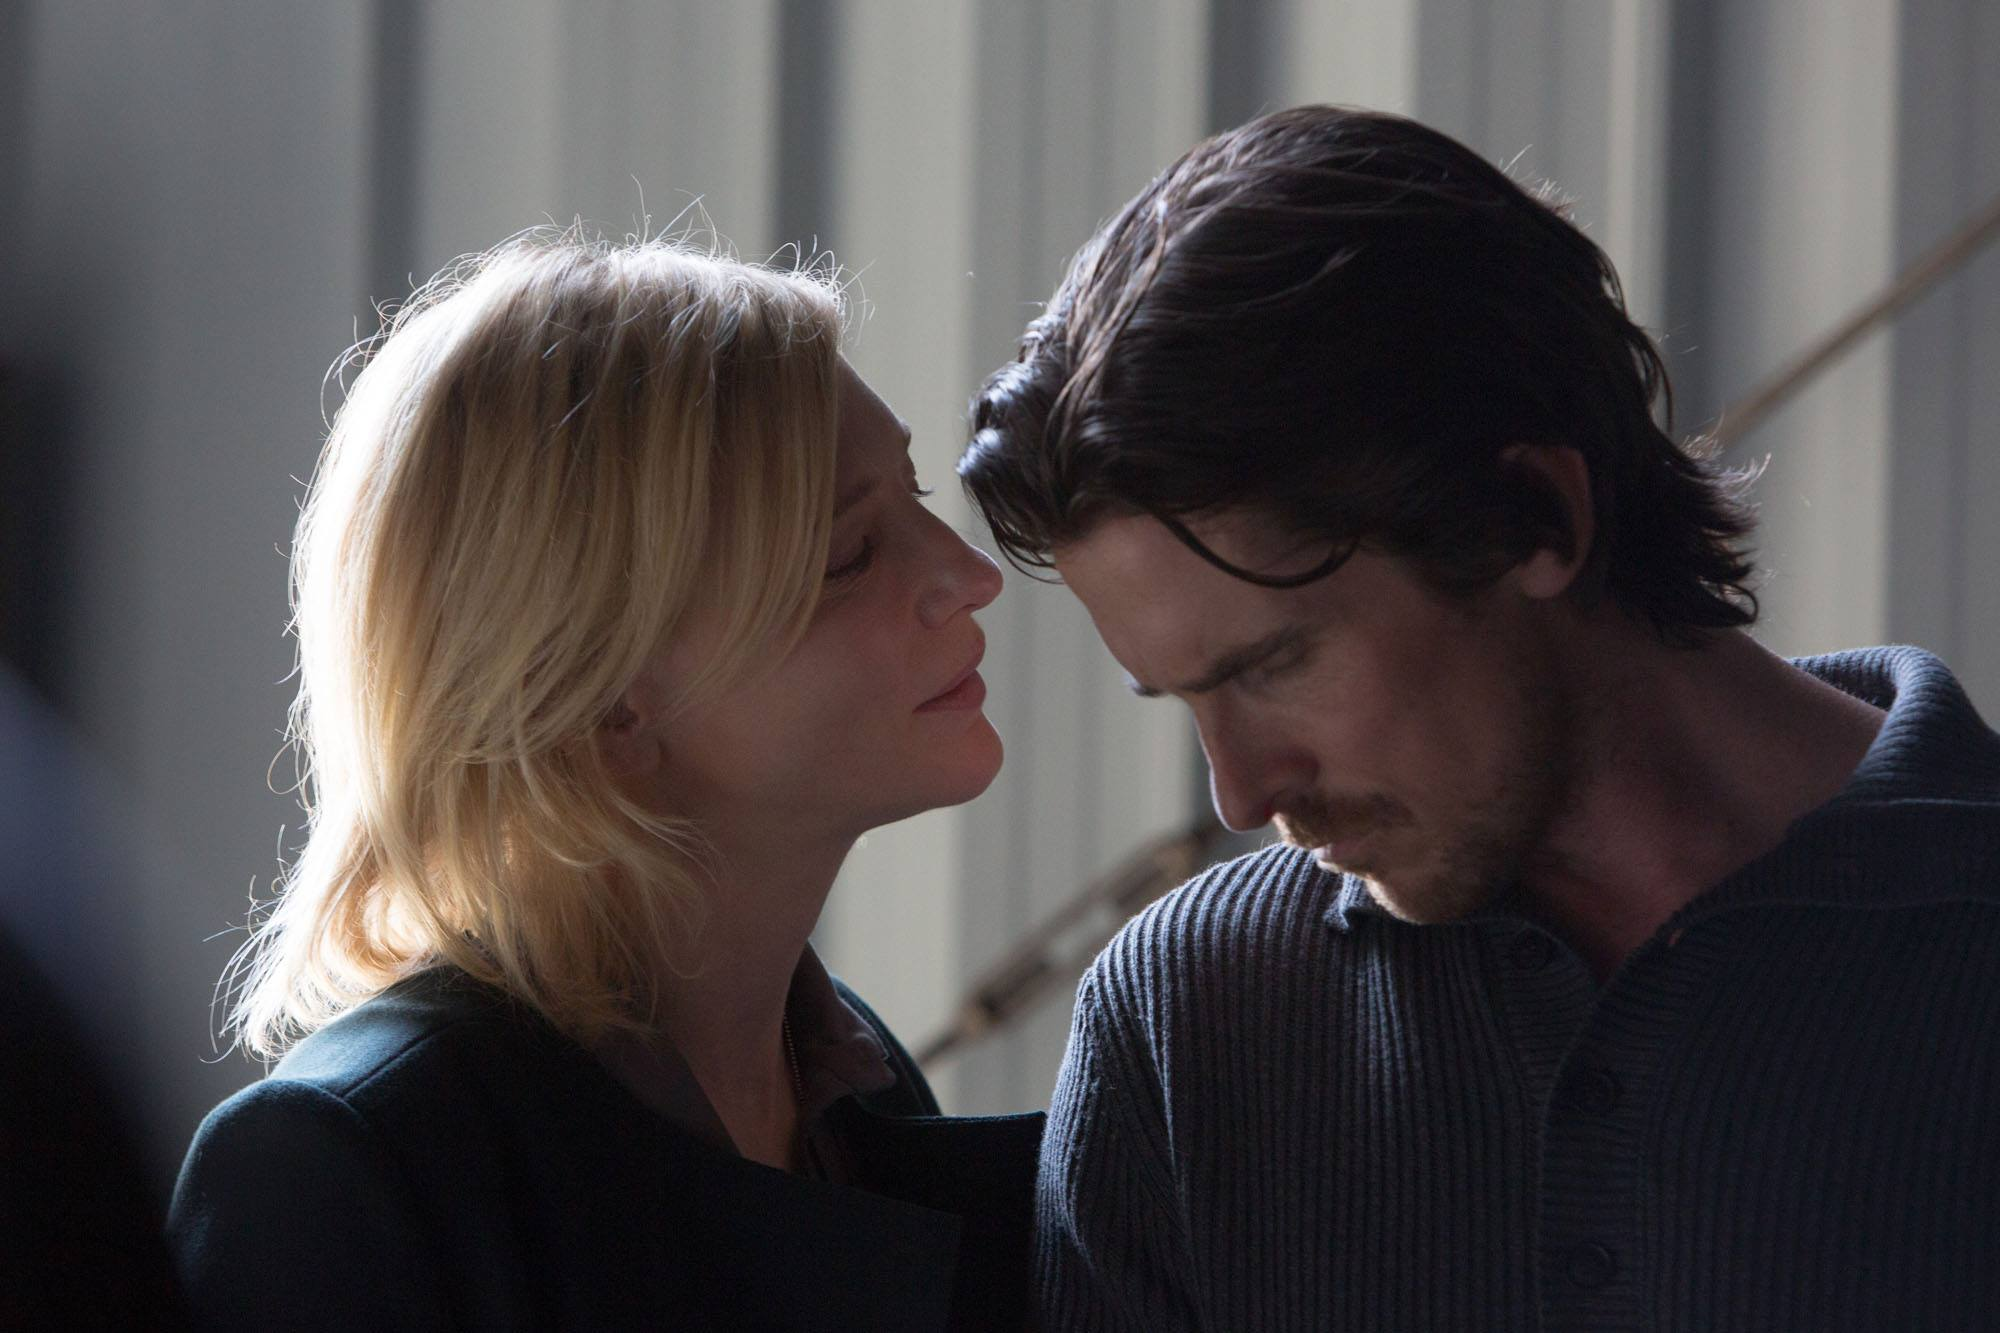 Christian Bale and Cate Blanchett in Knight of Cups